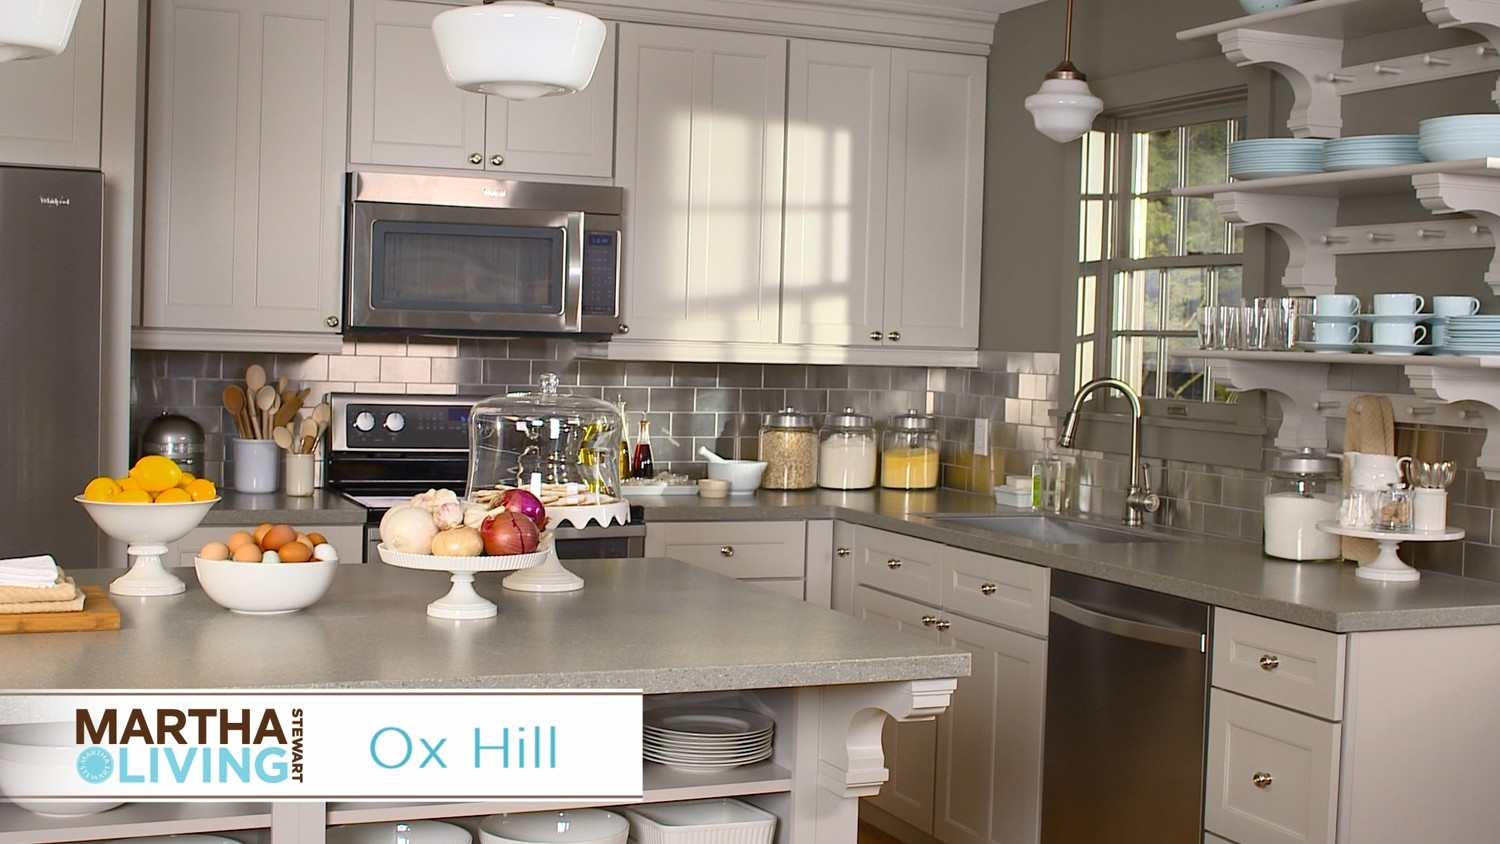 Video: New Martha Stewart Living Kitchens at The Home Depot | Martha ...